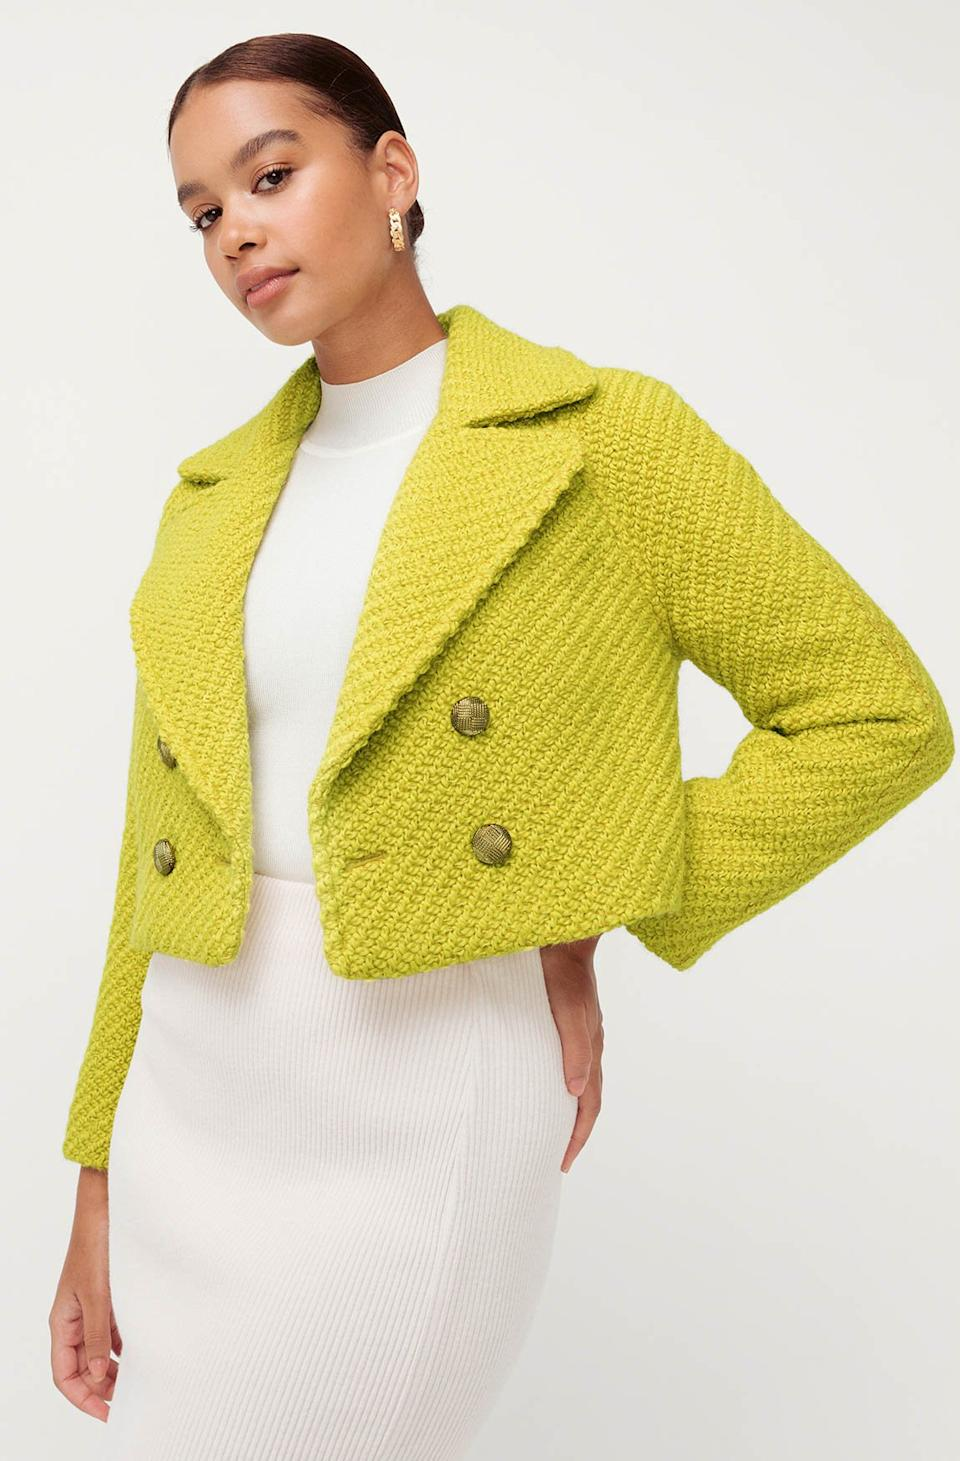 Highlight Coat, $99, down from $189.95